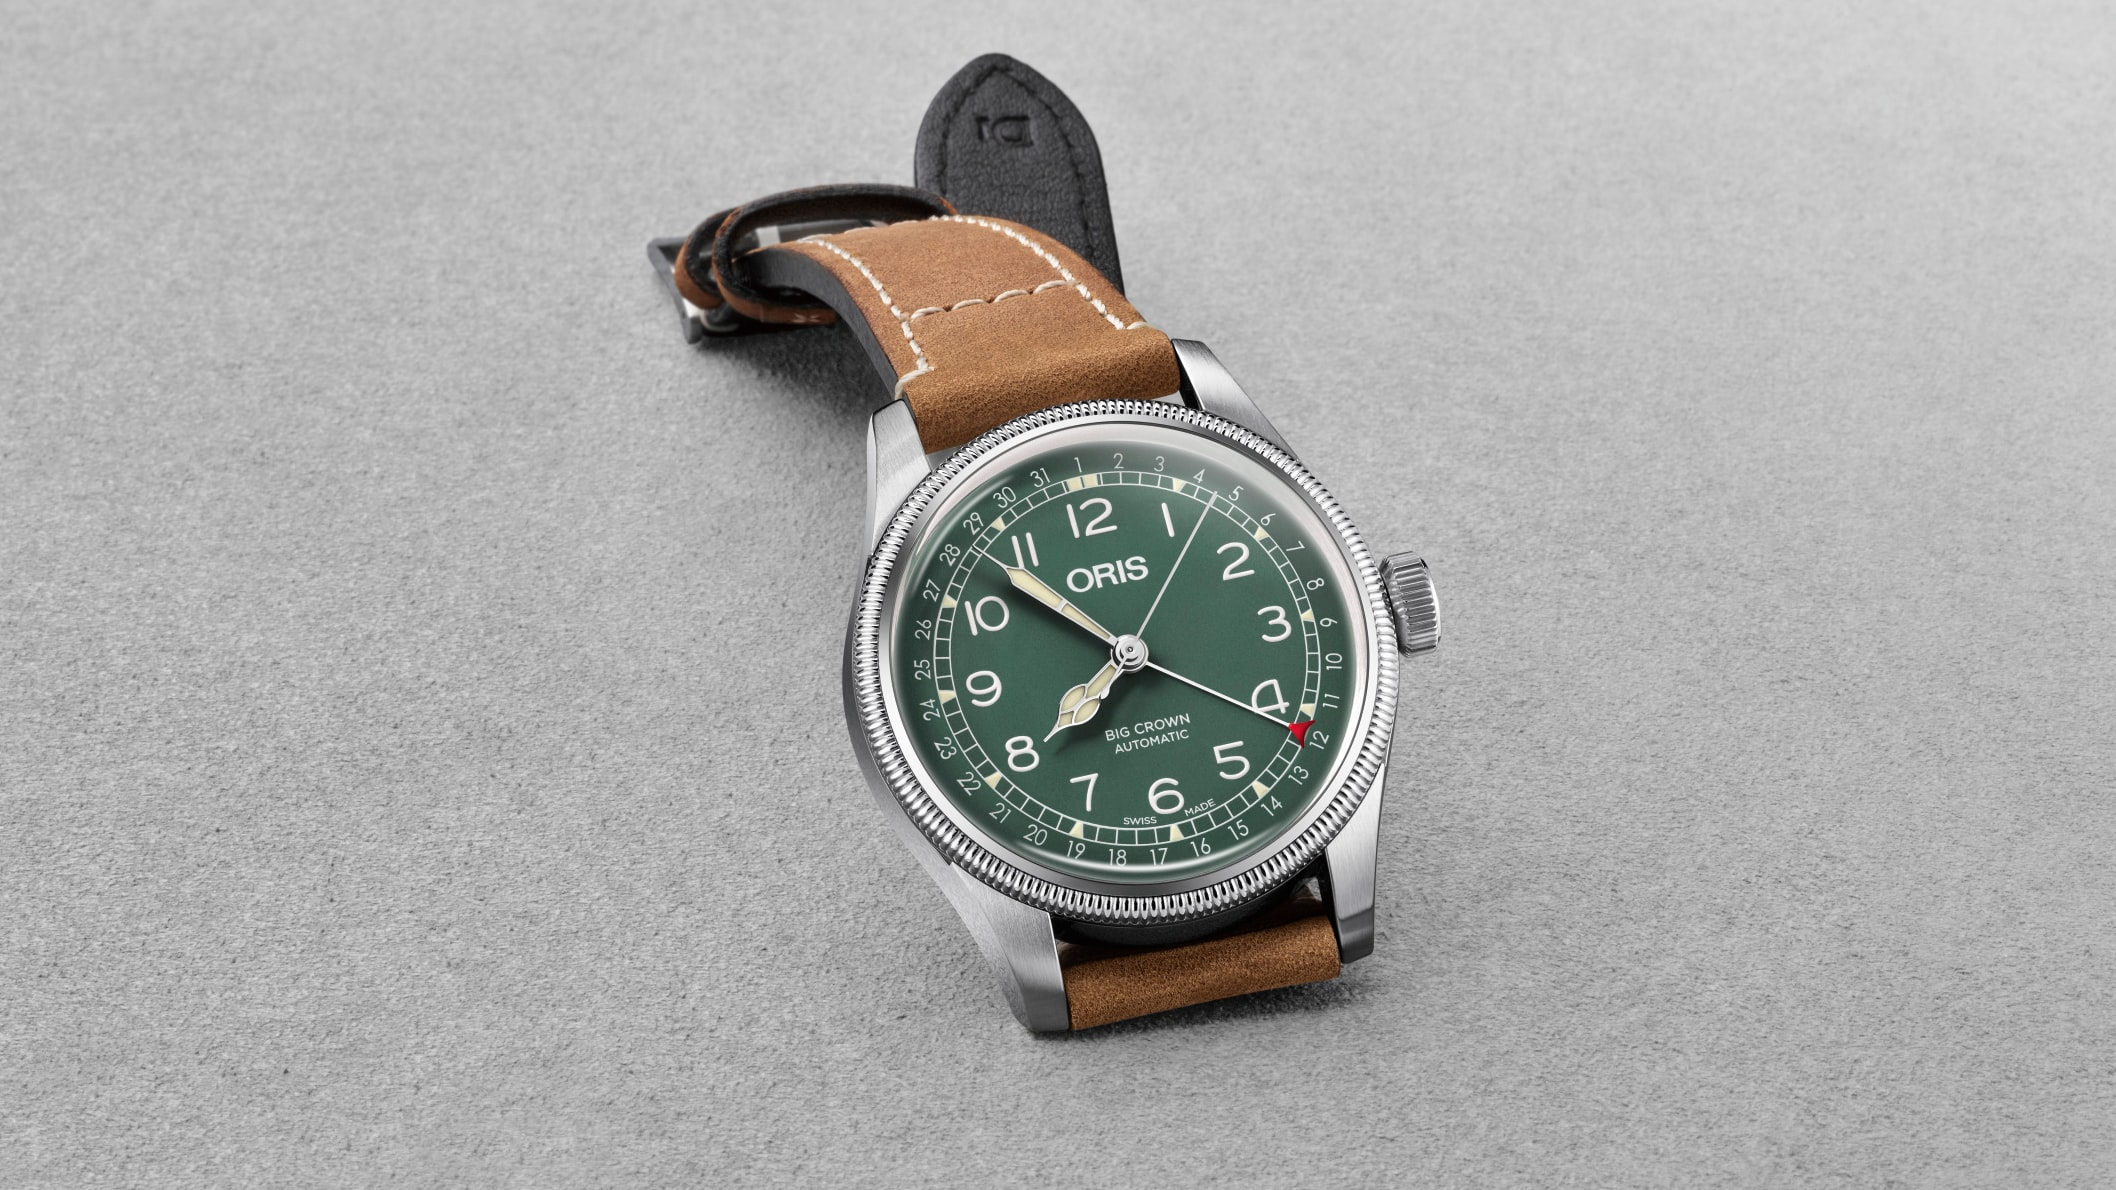 Introducing: The Oris Big Crown D.26 286 HB-RAG Limited Edition